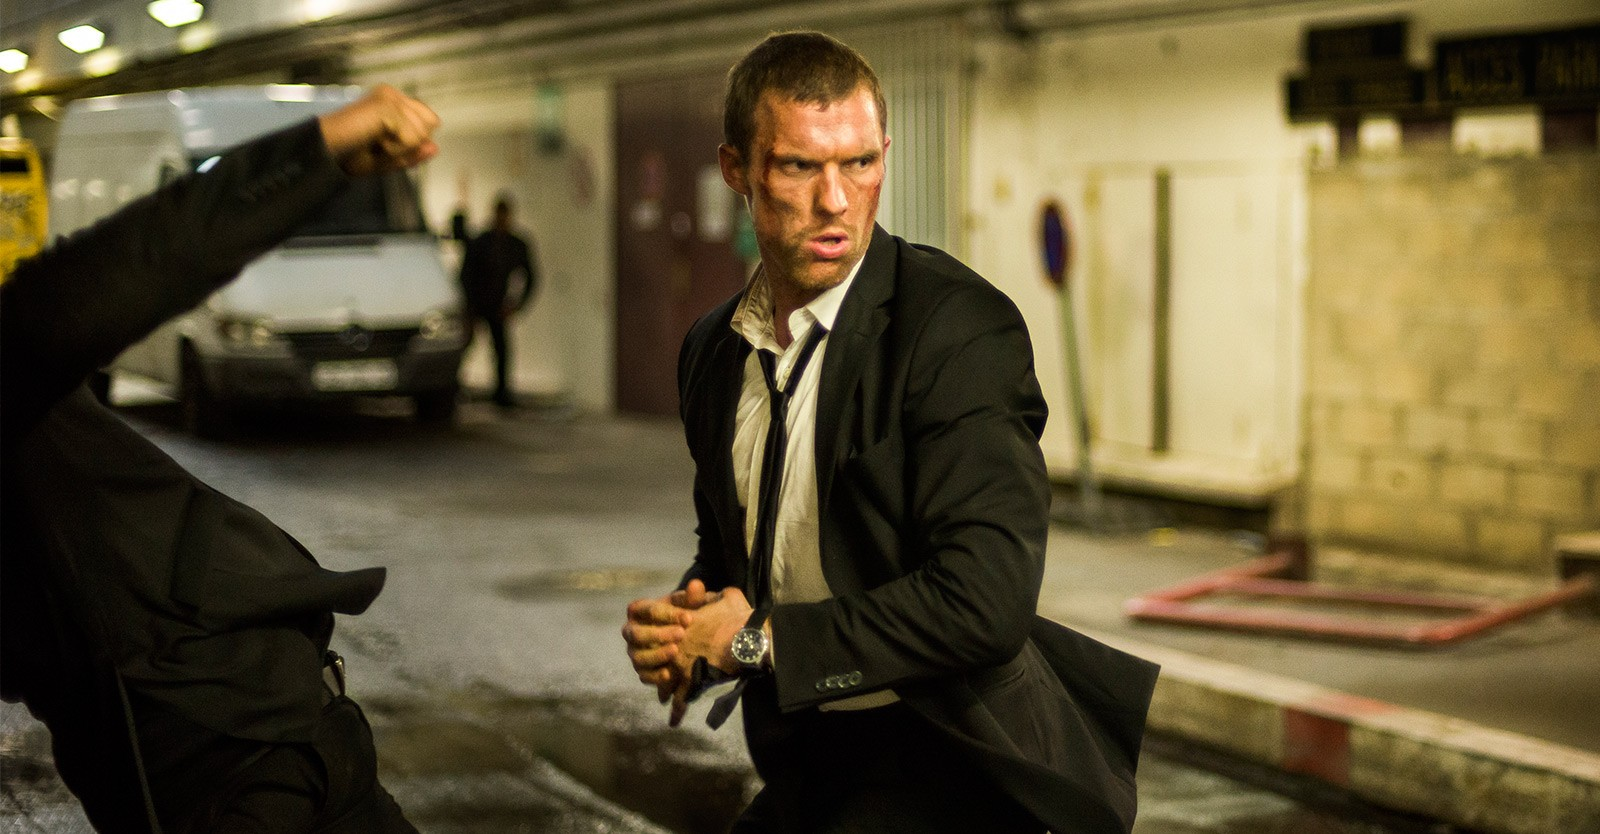 The Voracious Filmgoer: New Model: THE TRANSPORTER REFUELED